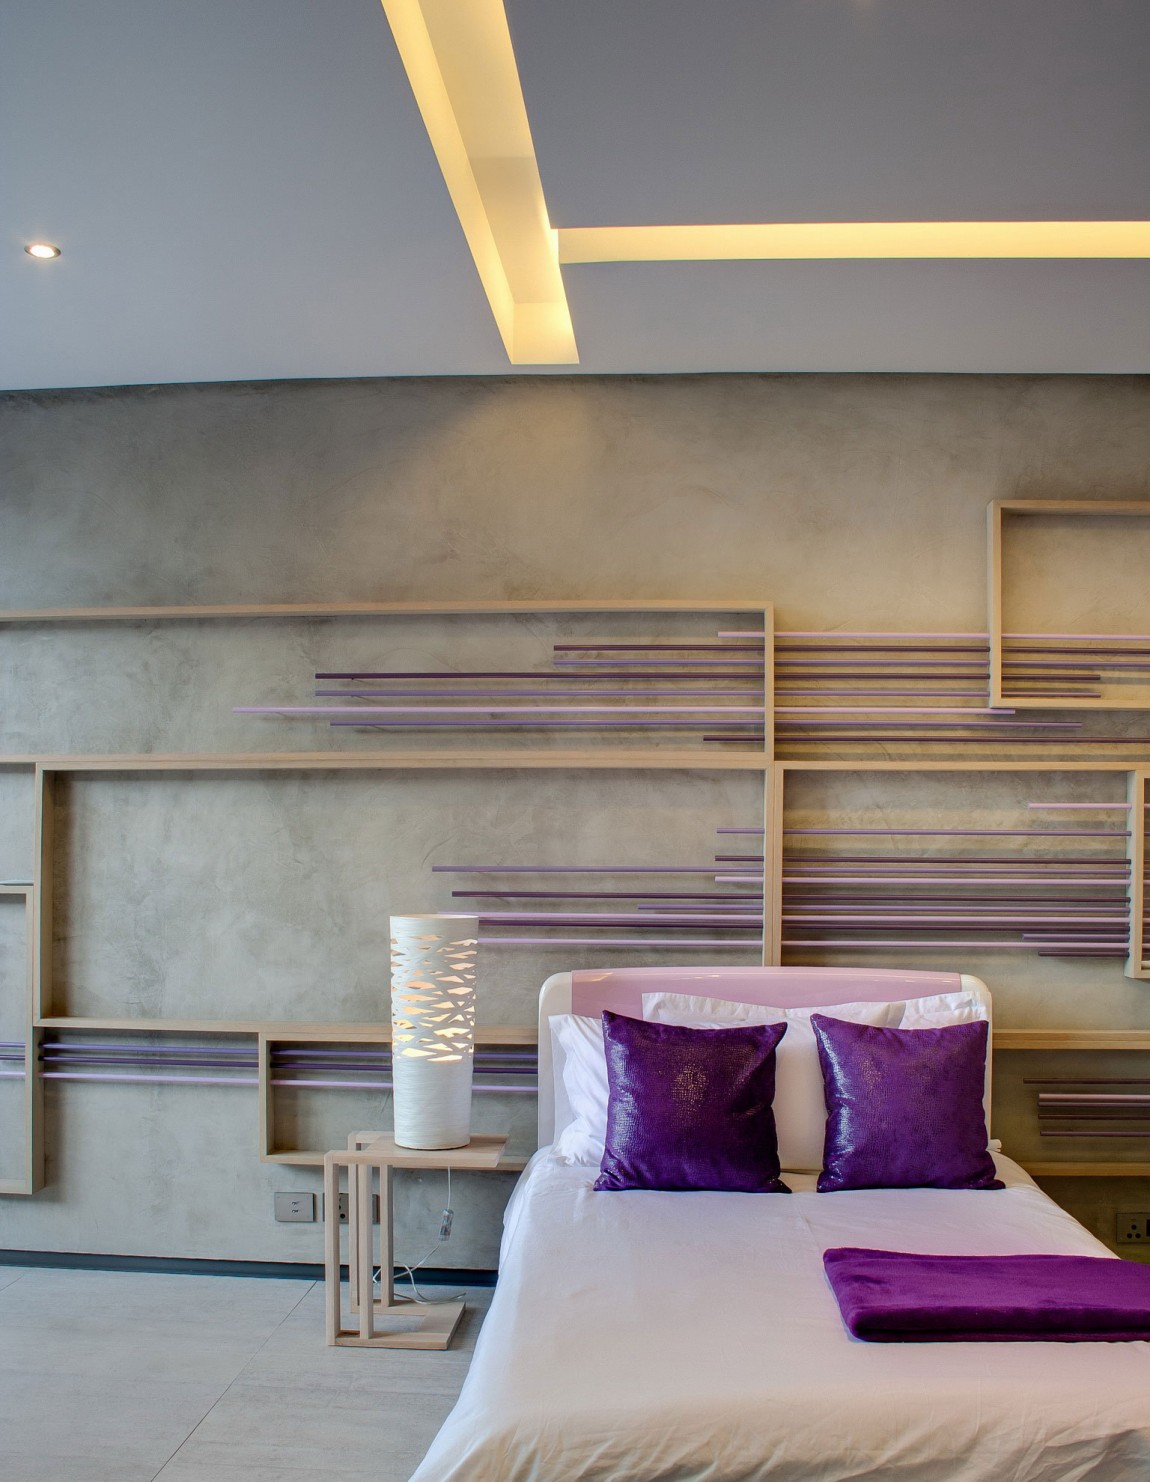 Purple bedroom design in House Sar by Nico van der Meulen Architects